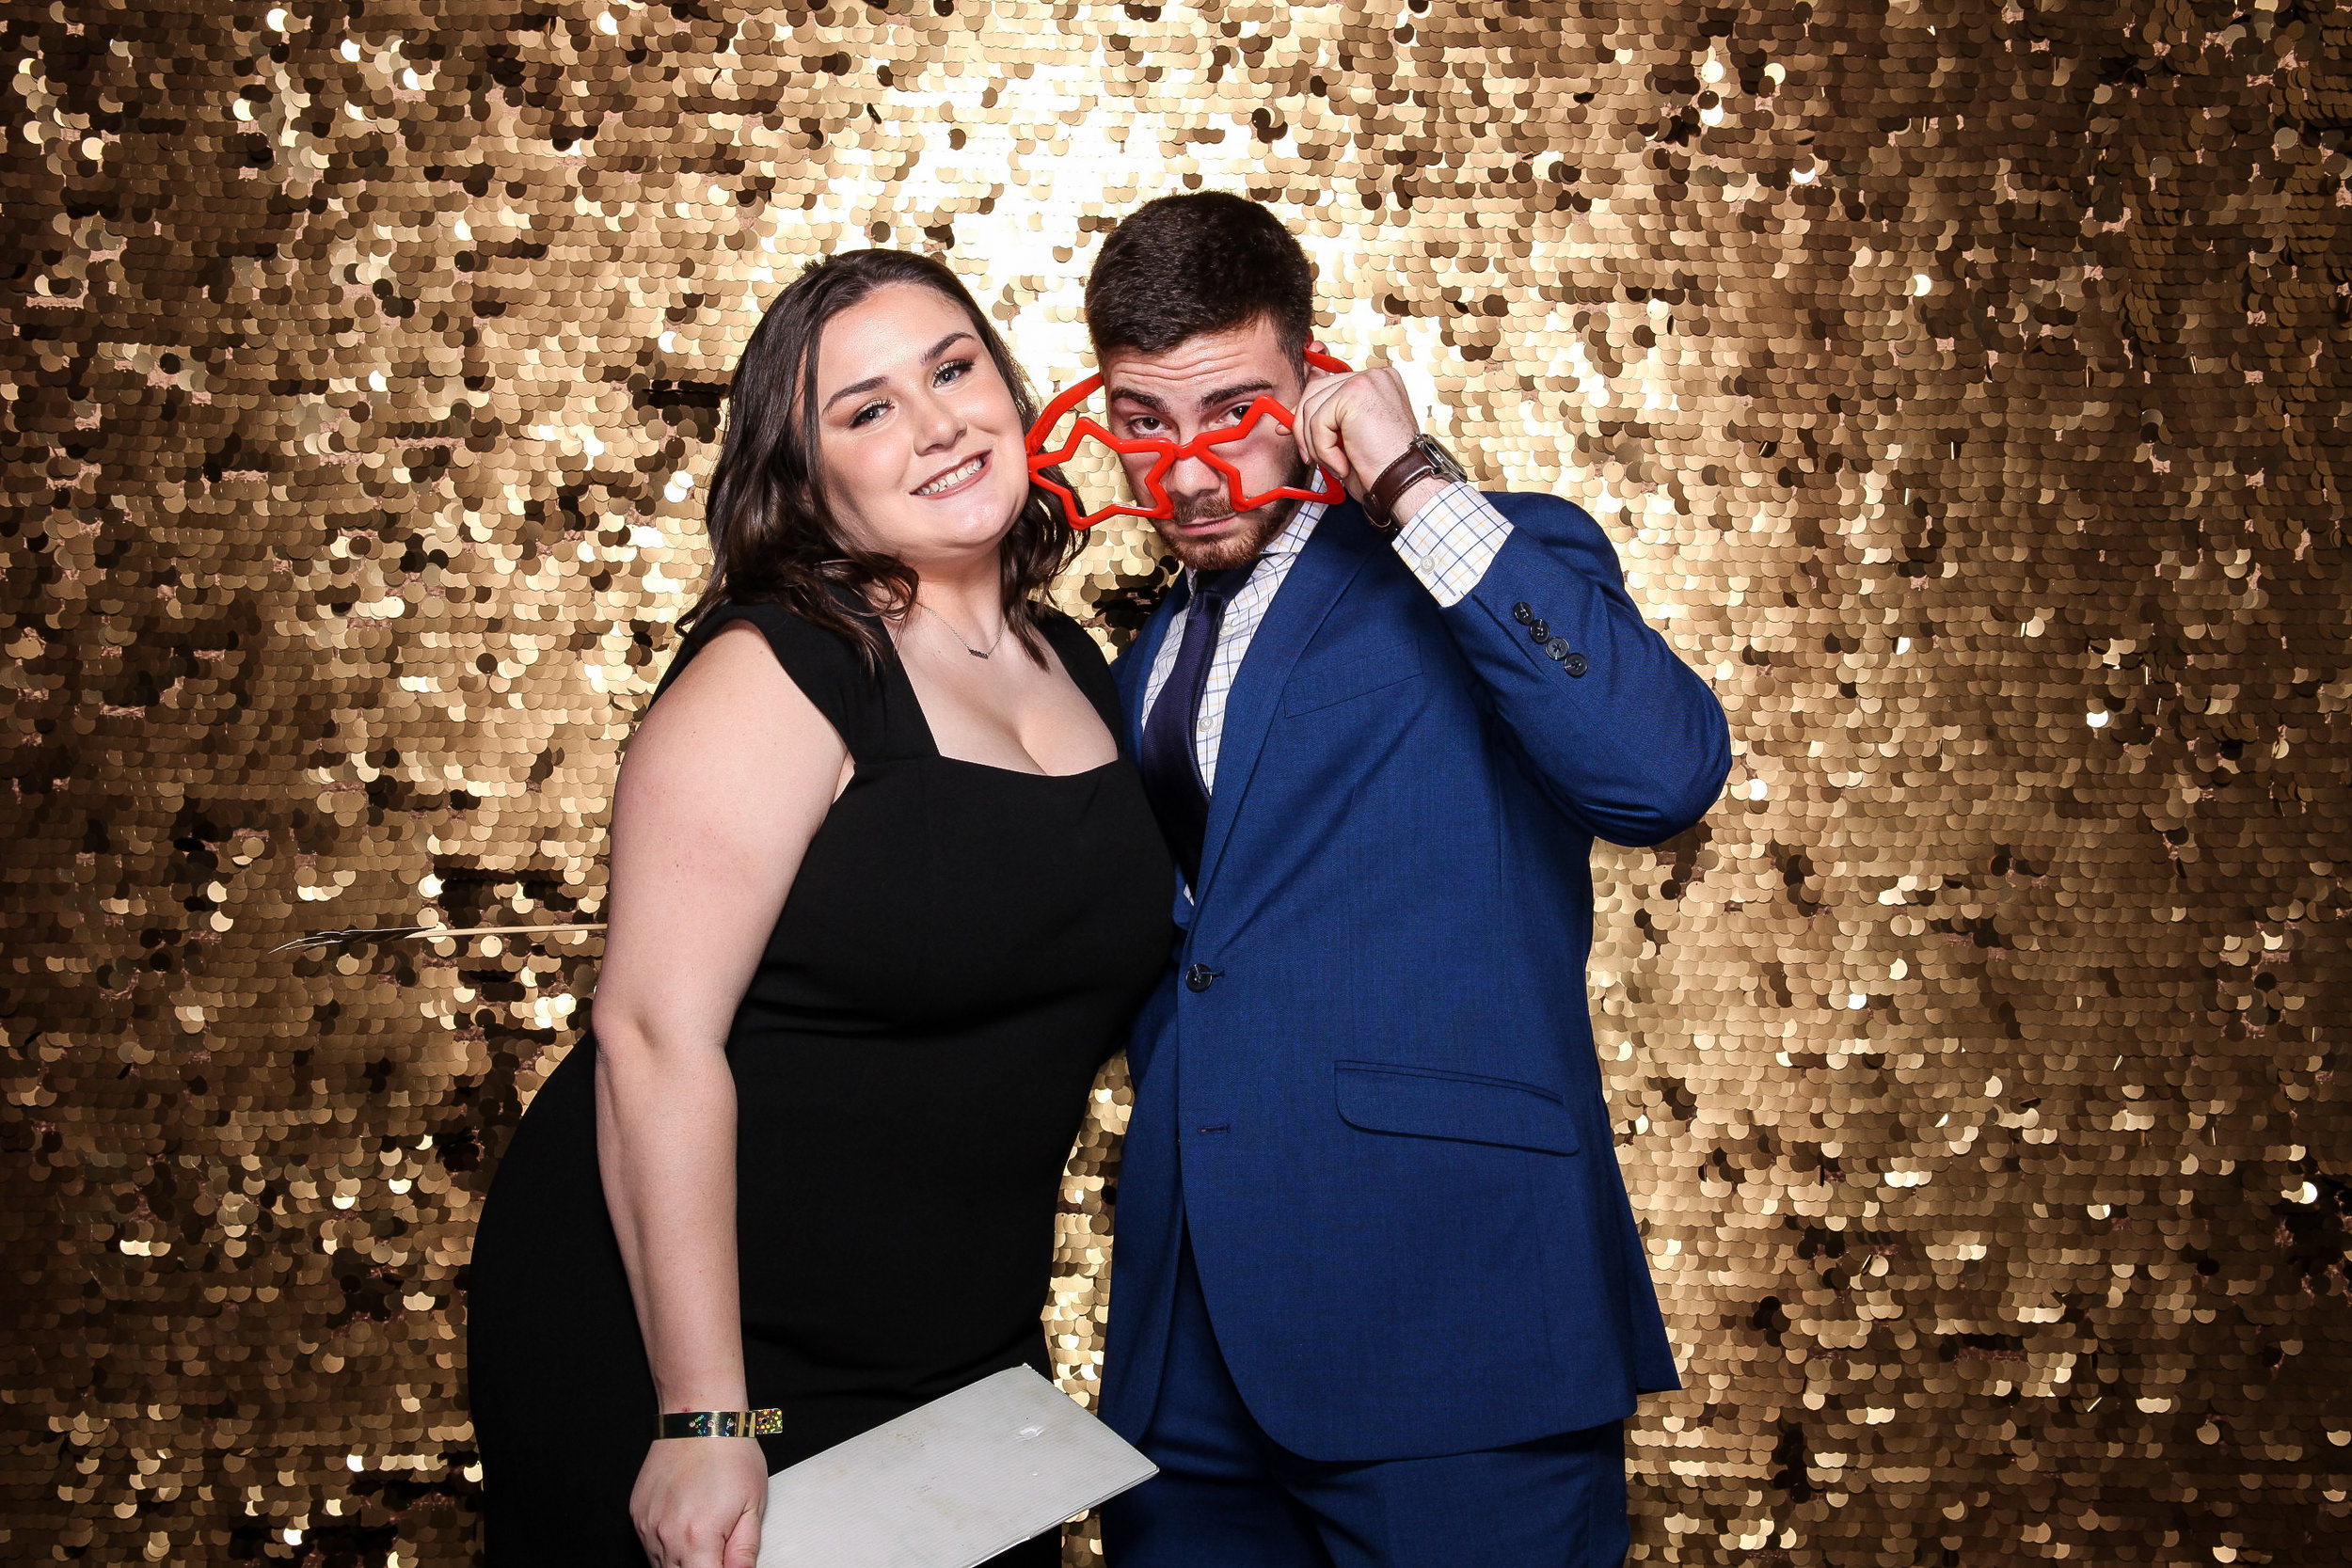 20190503_Adelphi_Senior_Formal-119.jpg